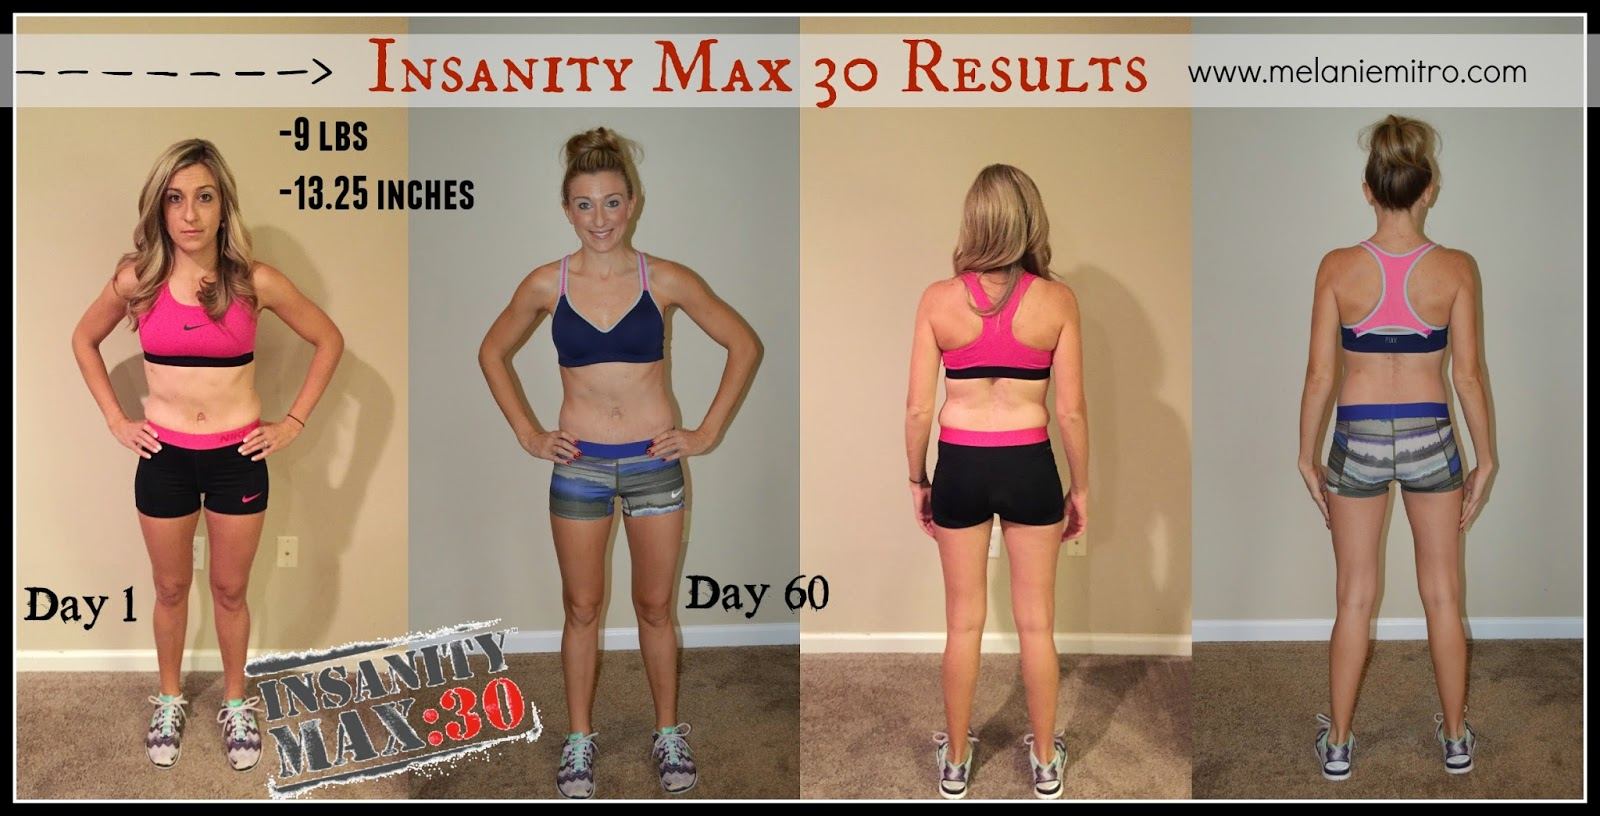 Insanity Max 30 Test Group, Melanie Mitro, Results, Transformation Story, Before and After Pictures, Shaun T, Nutrition, Meal Plan